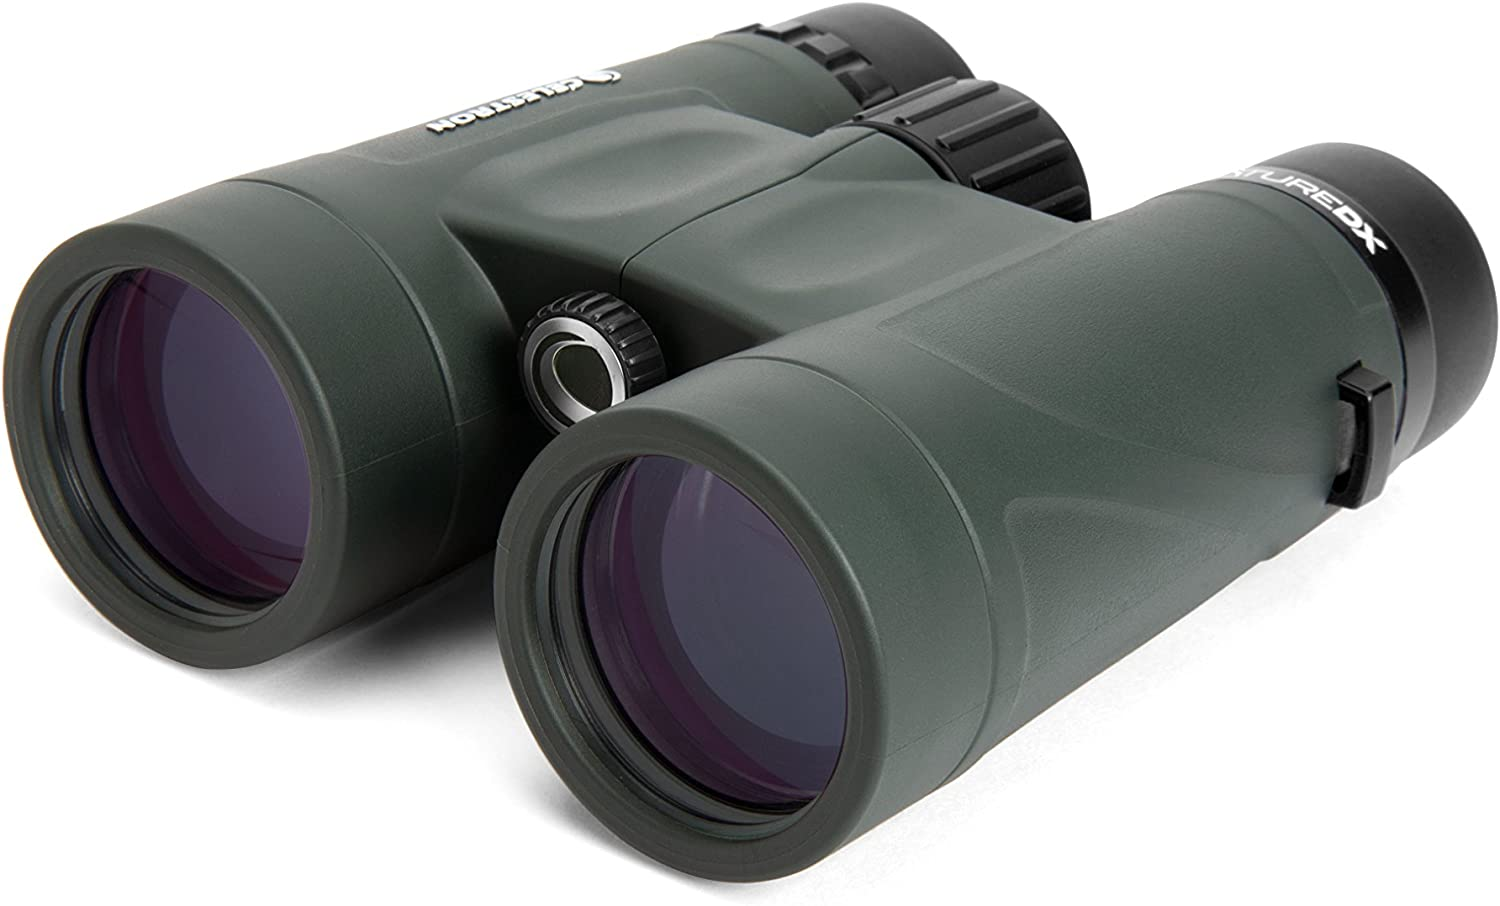 Celestron - Nature DX 8x42 Binocular - Top Rated Birding Binoculars